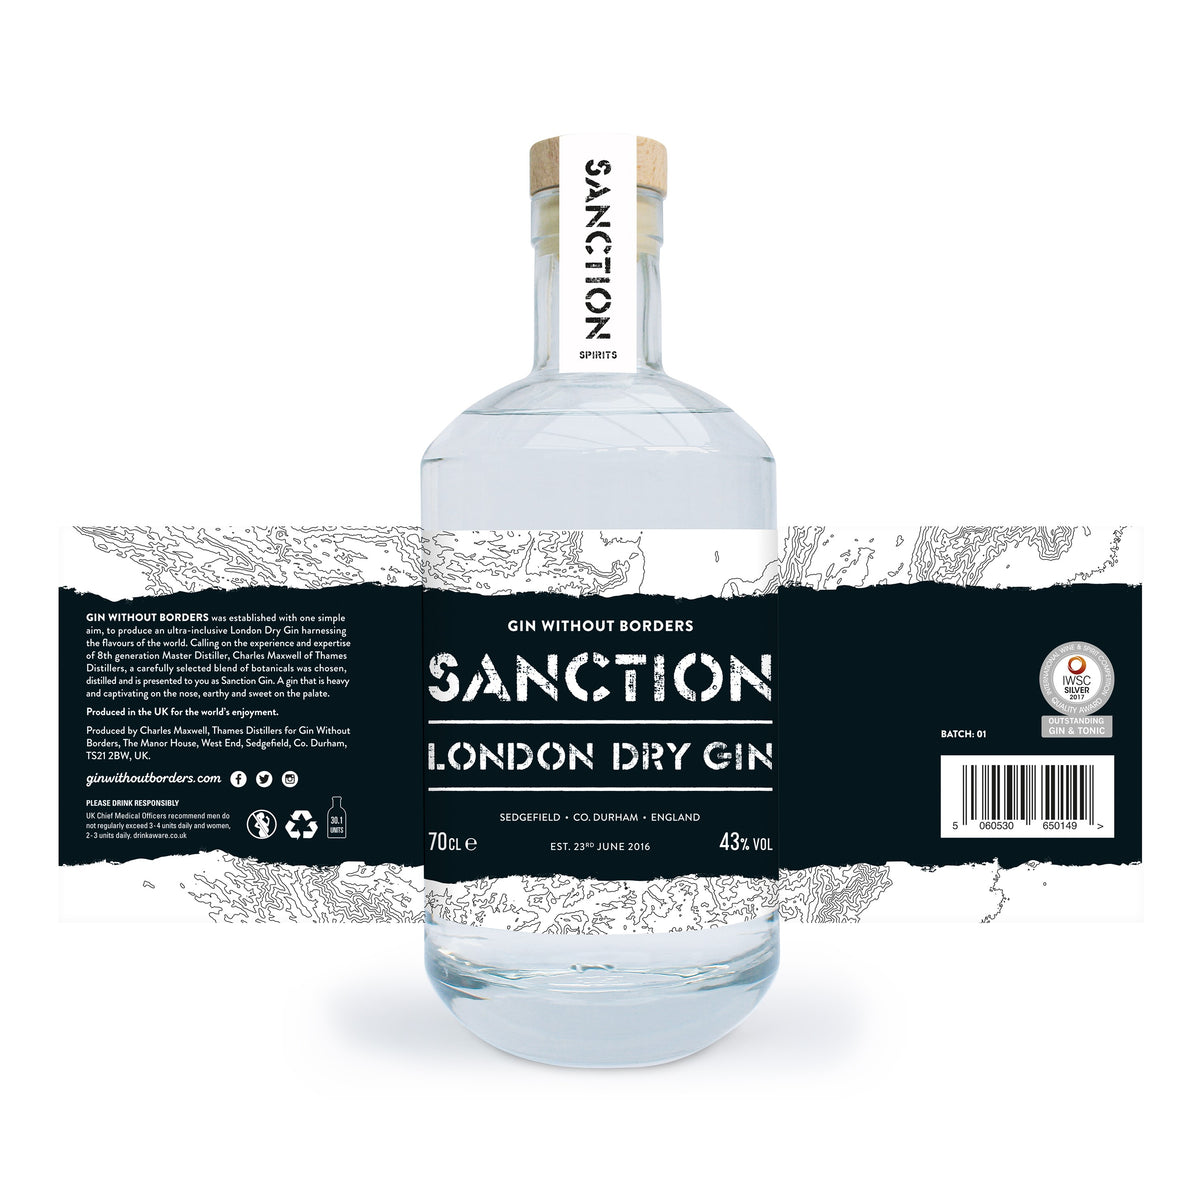 Sanction Gin London Dry Gin 70 cl 43% ABV